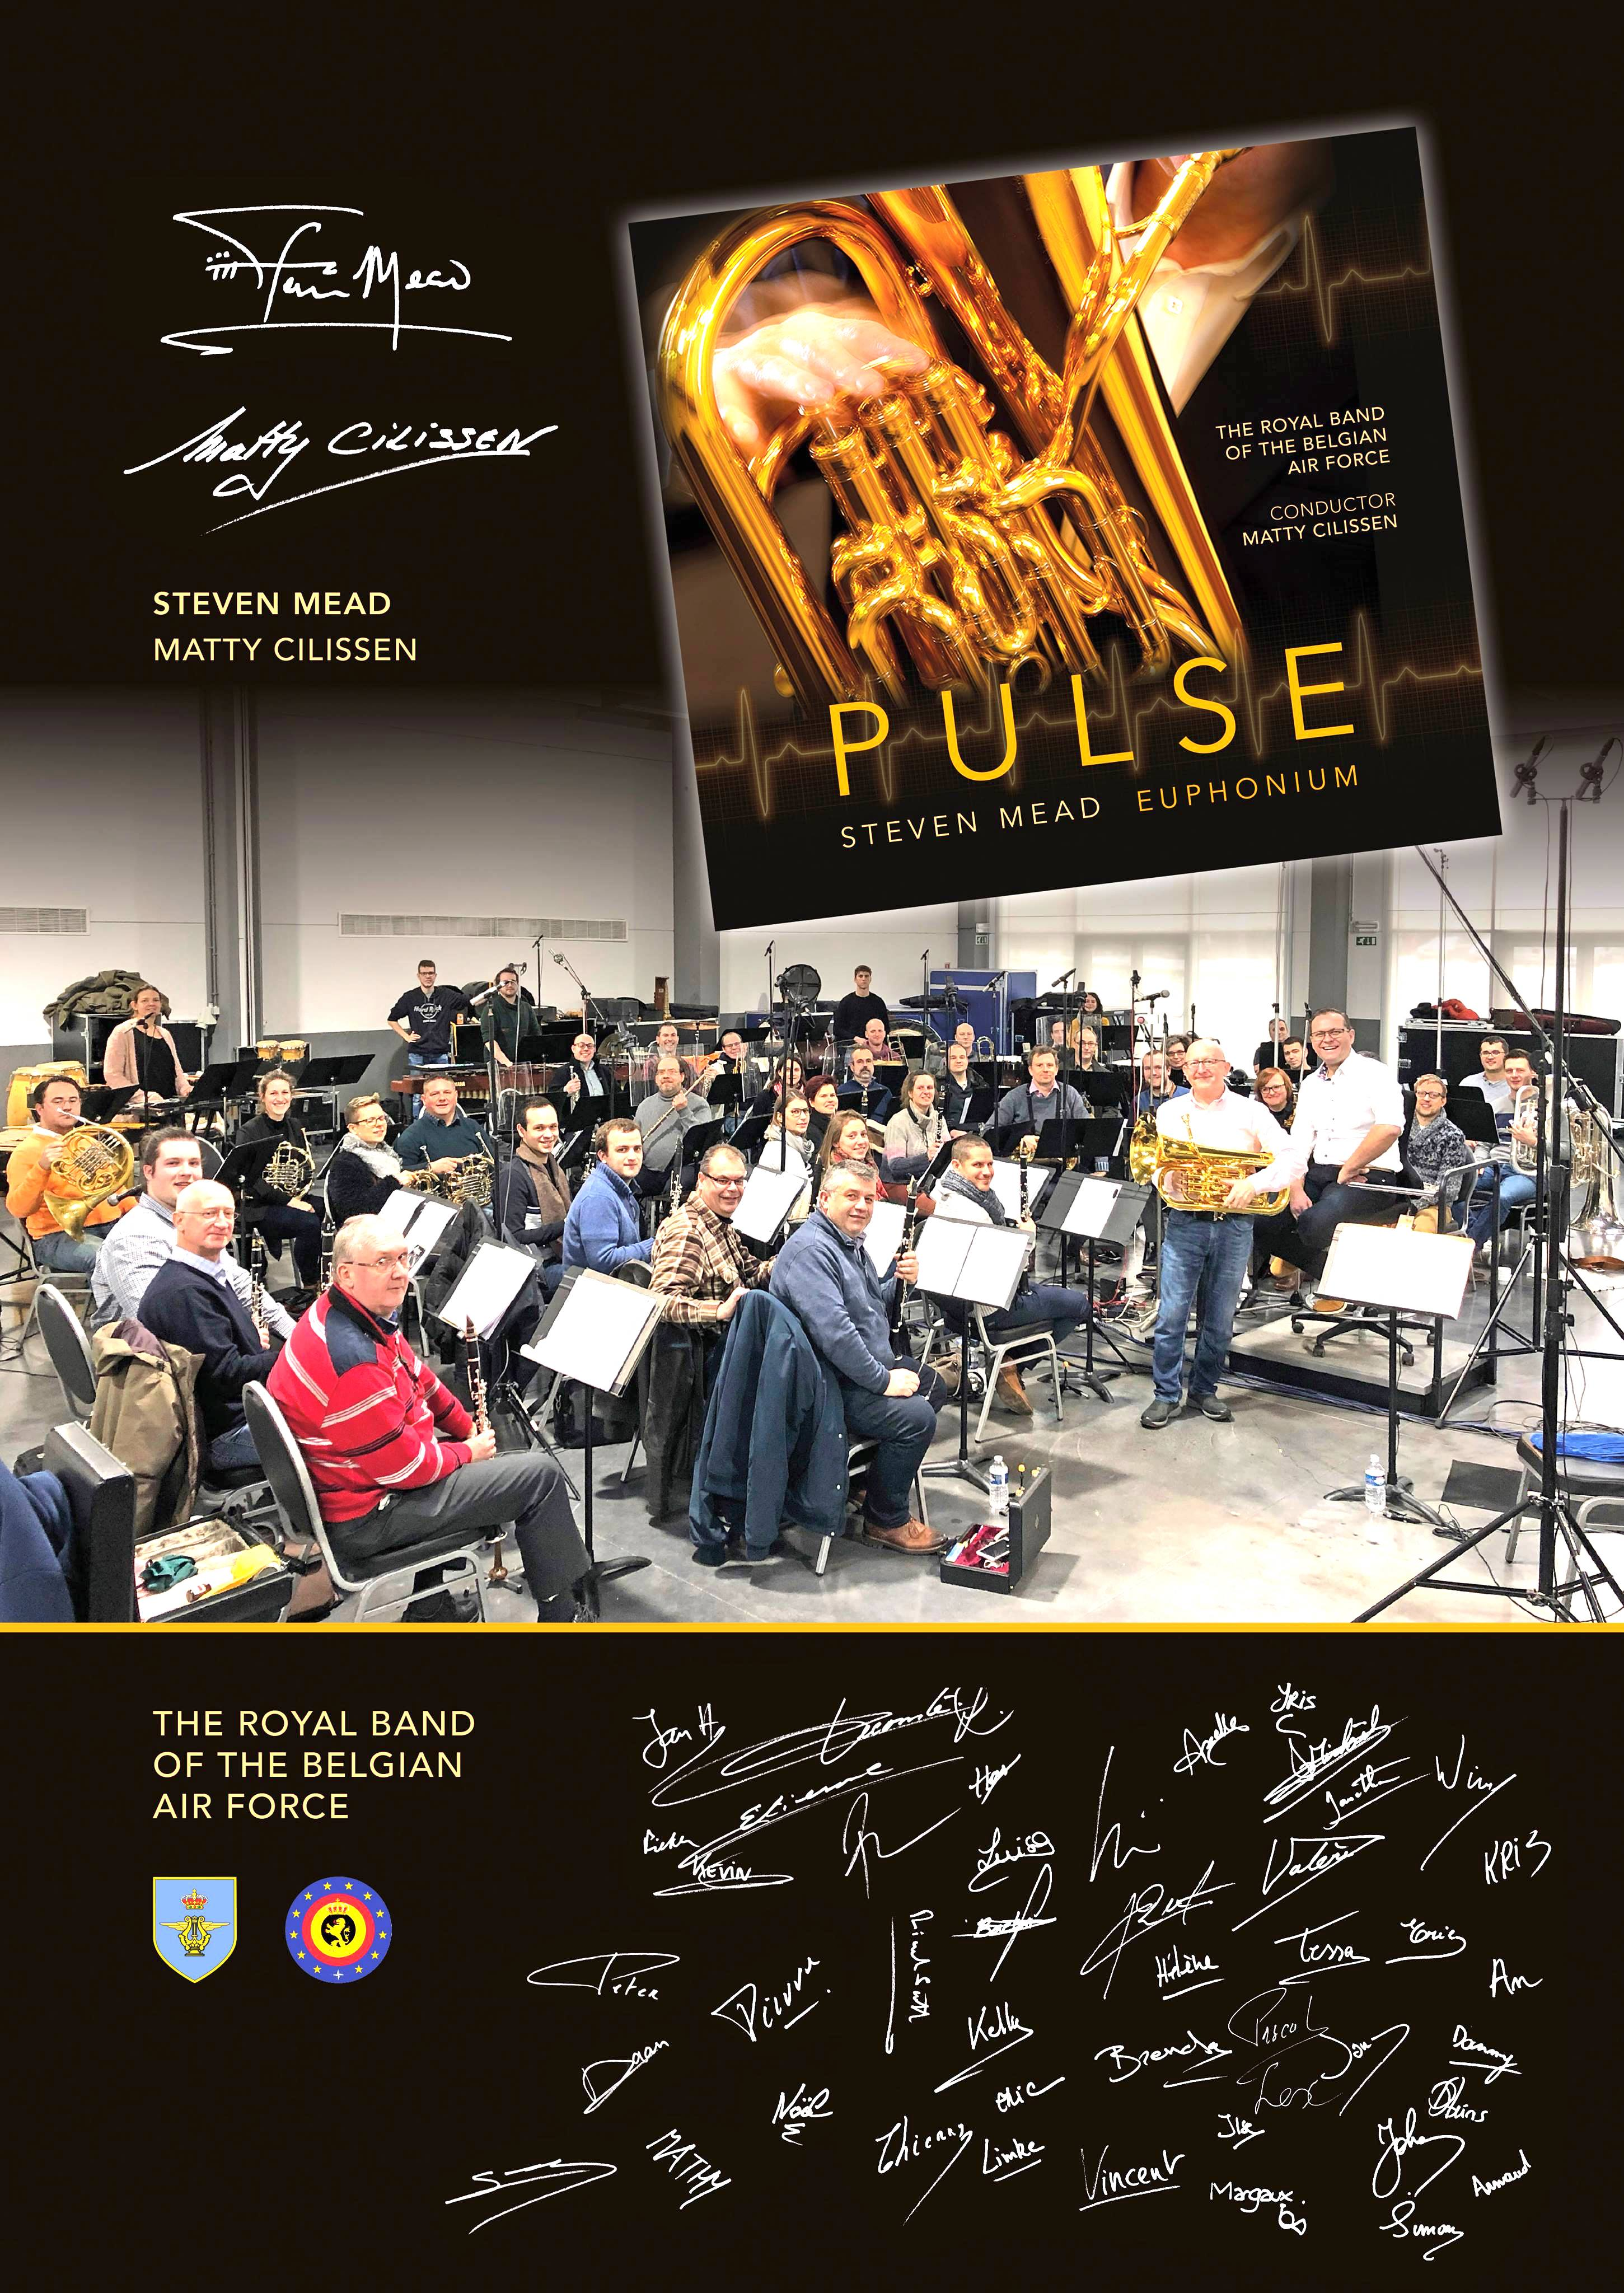 Signed souvenir poster for the Pulse CD